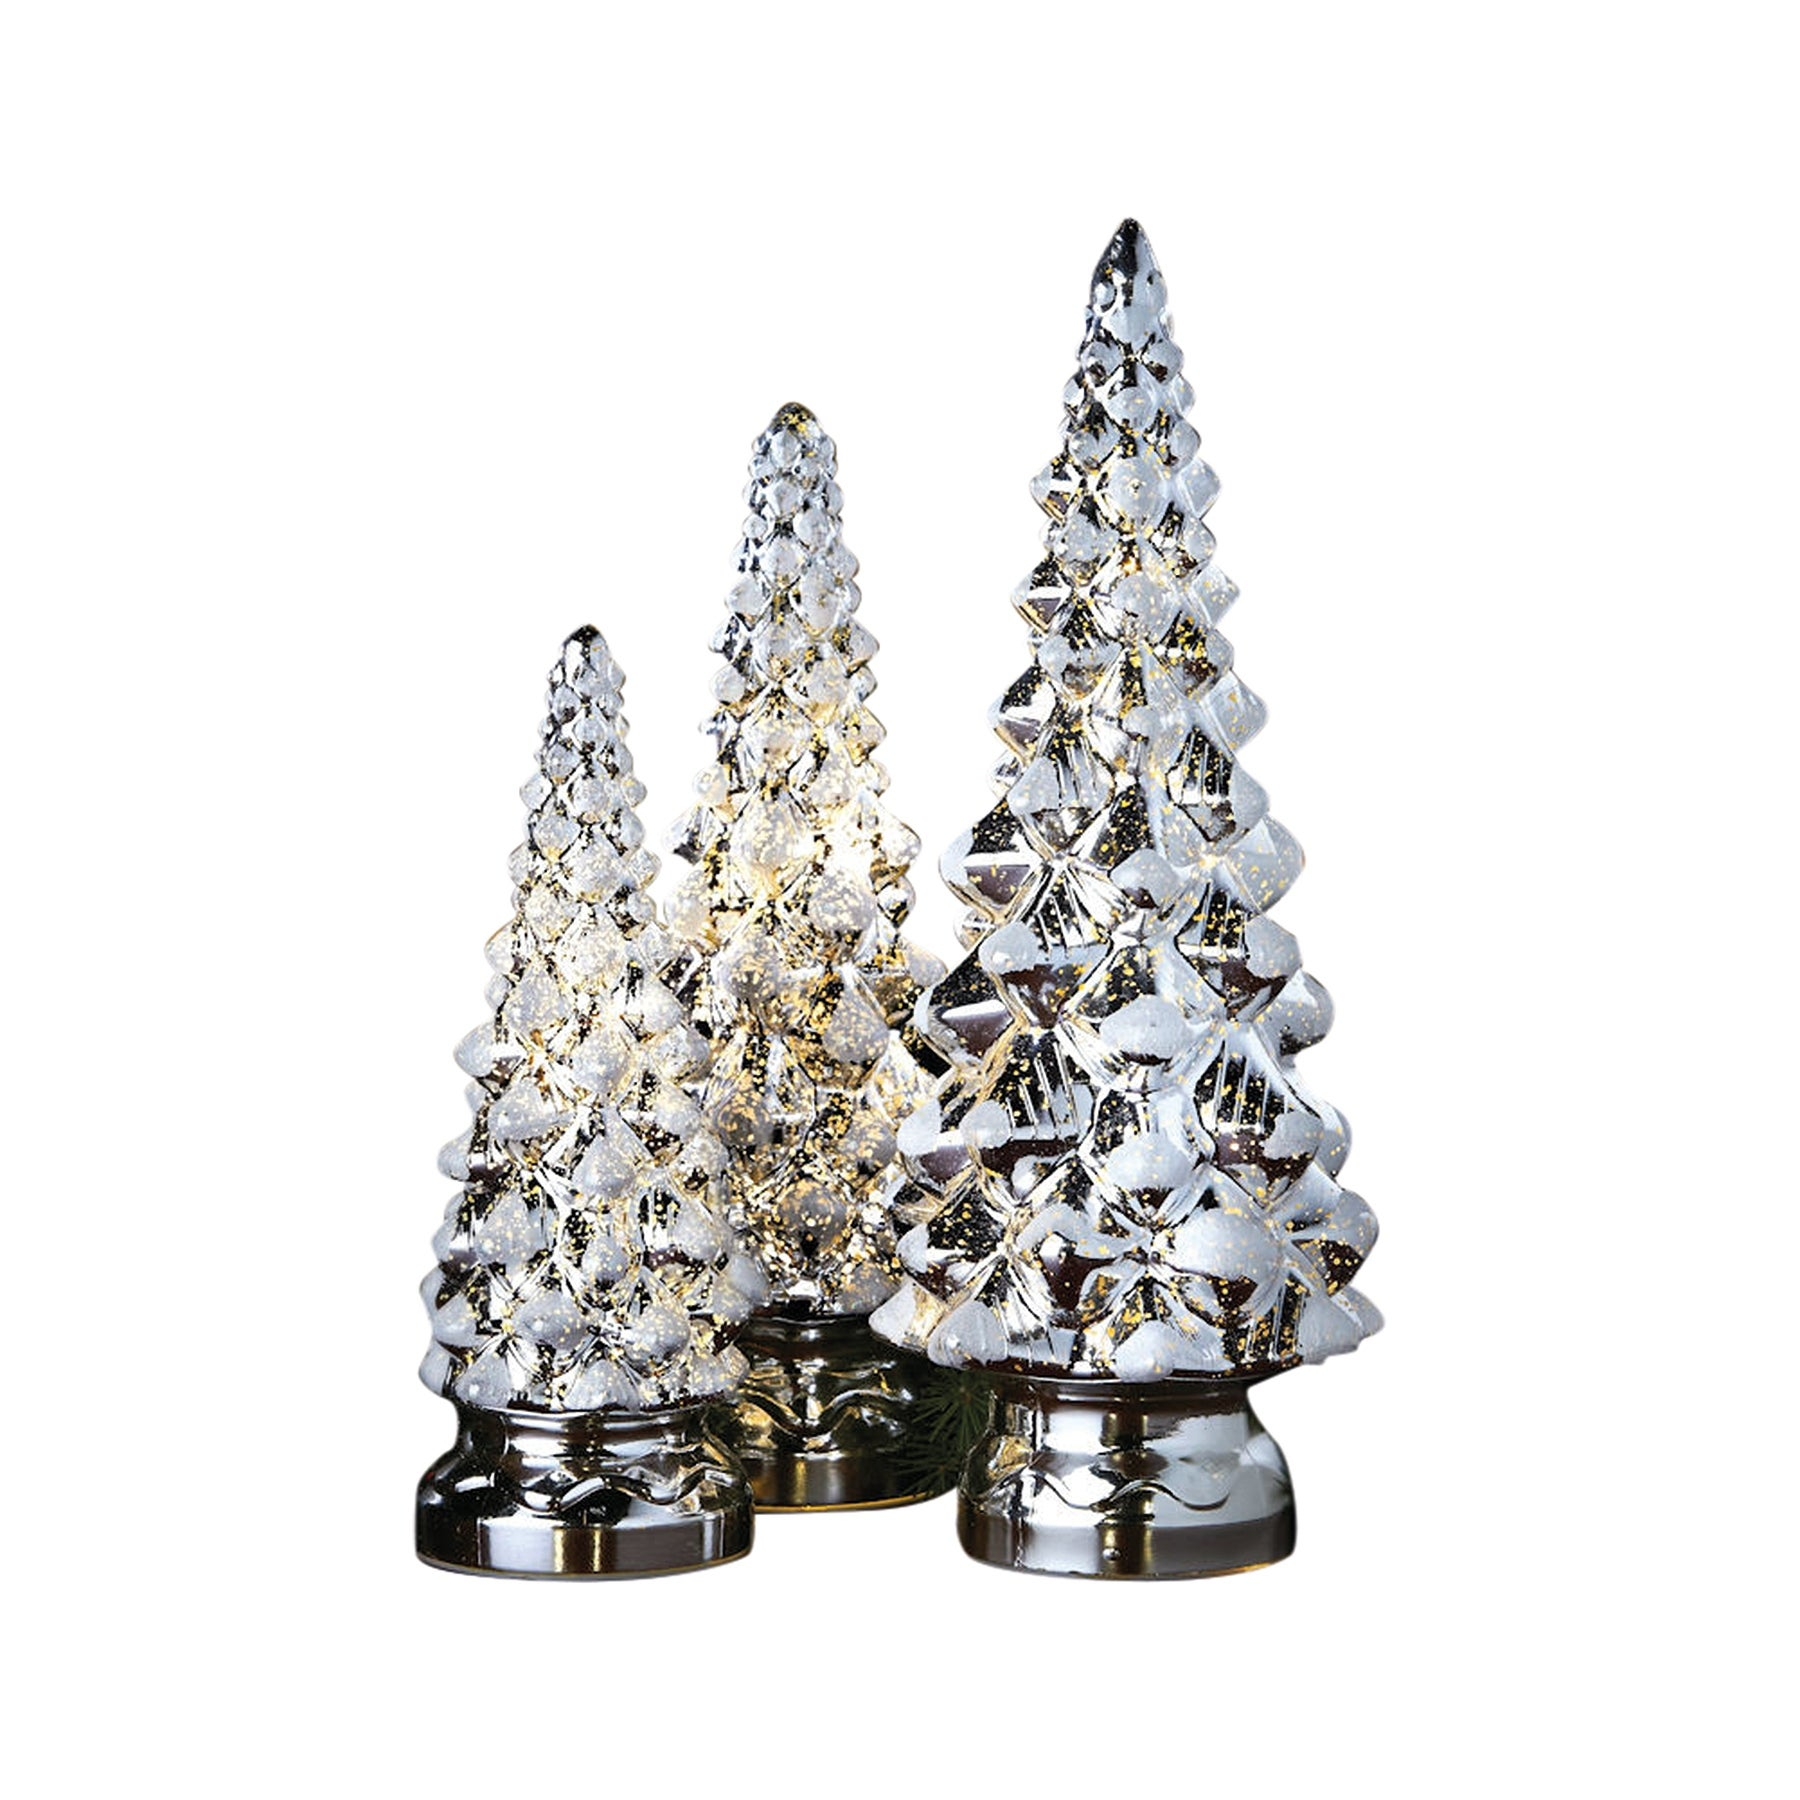 Mr Christmas Ling Trees 10 Inch 12 And 14 Silver Set Of 3 16 In X 8